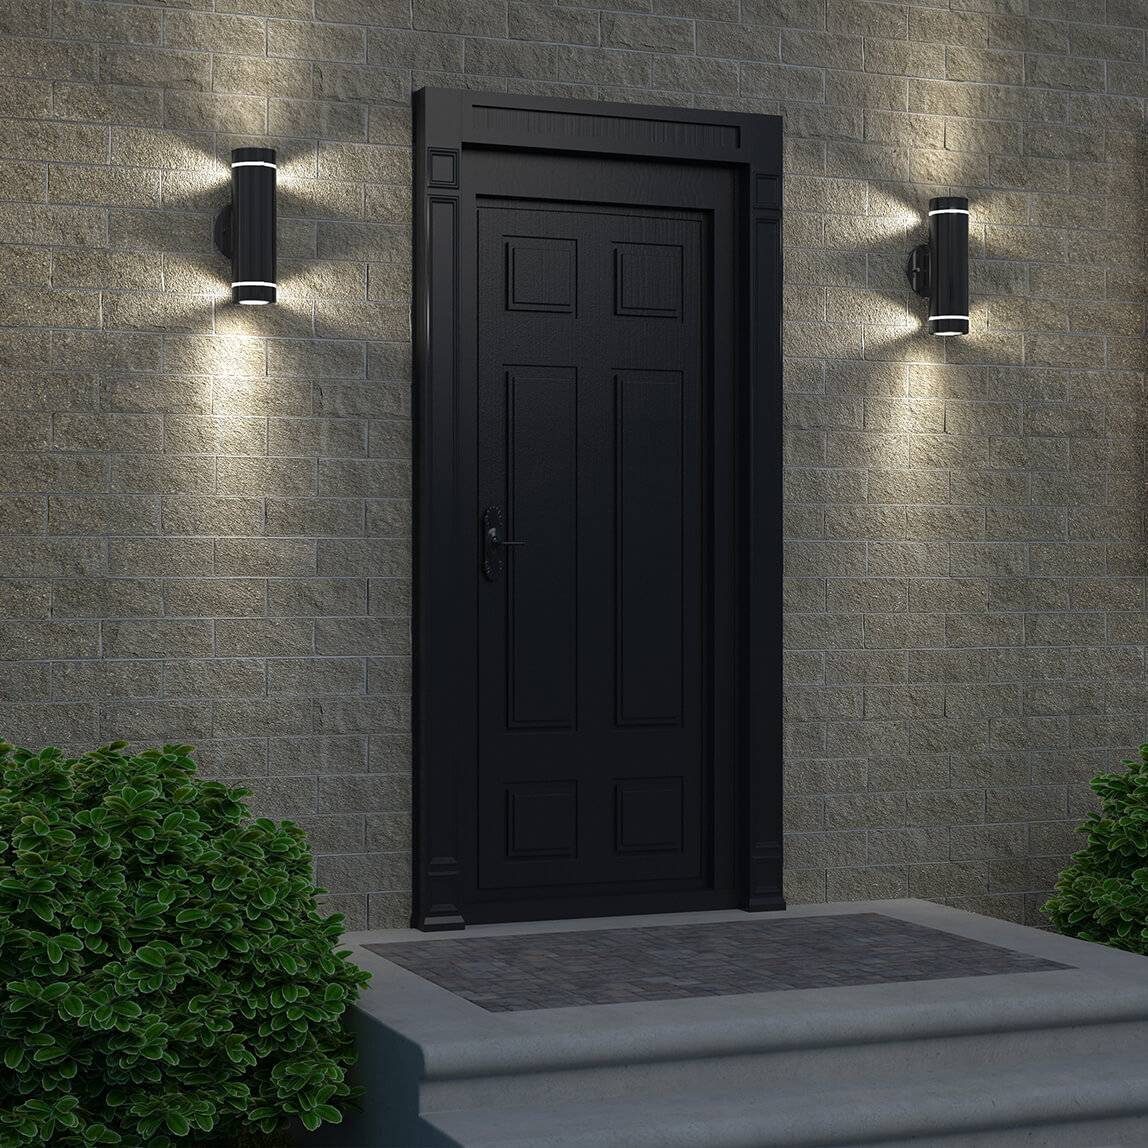 C7 Black Outdoor Wall Light